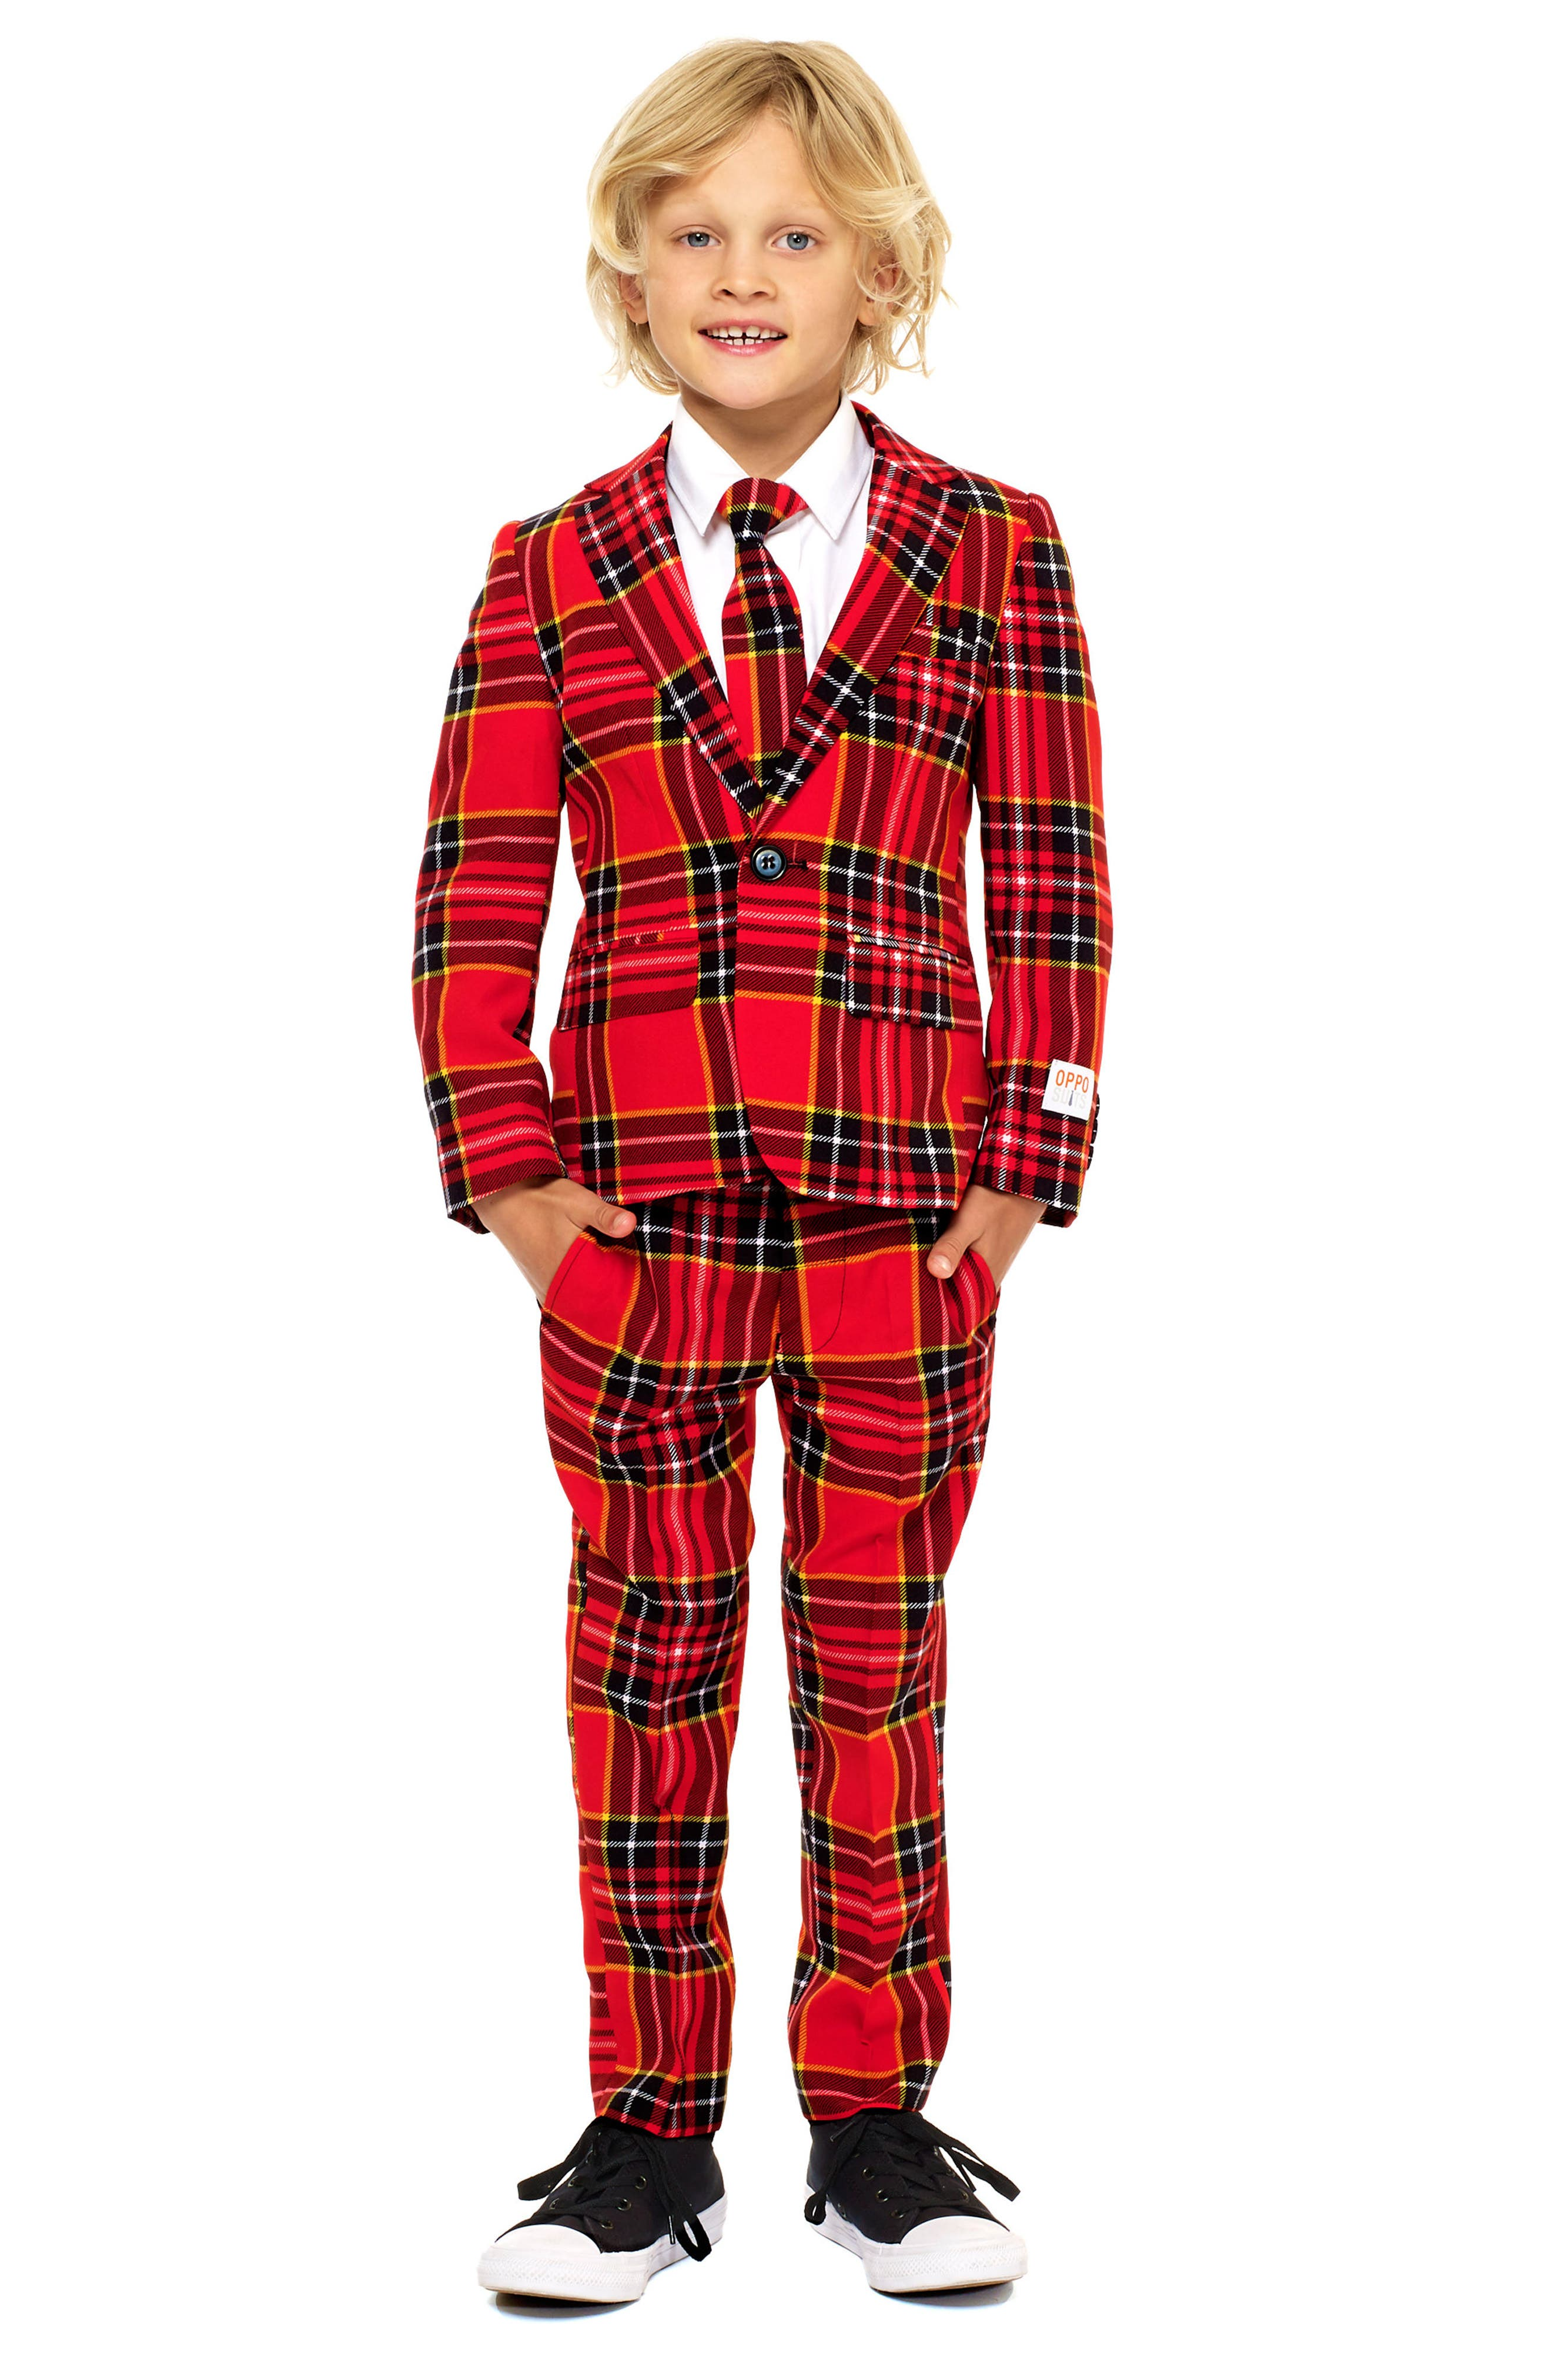 Alternate Image 1 Selected - Oppo Lumberjack Two-Piece Suit with Tie (Toddler Boys, Little Boys & Big Boys)